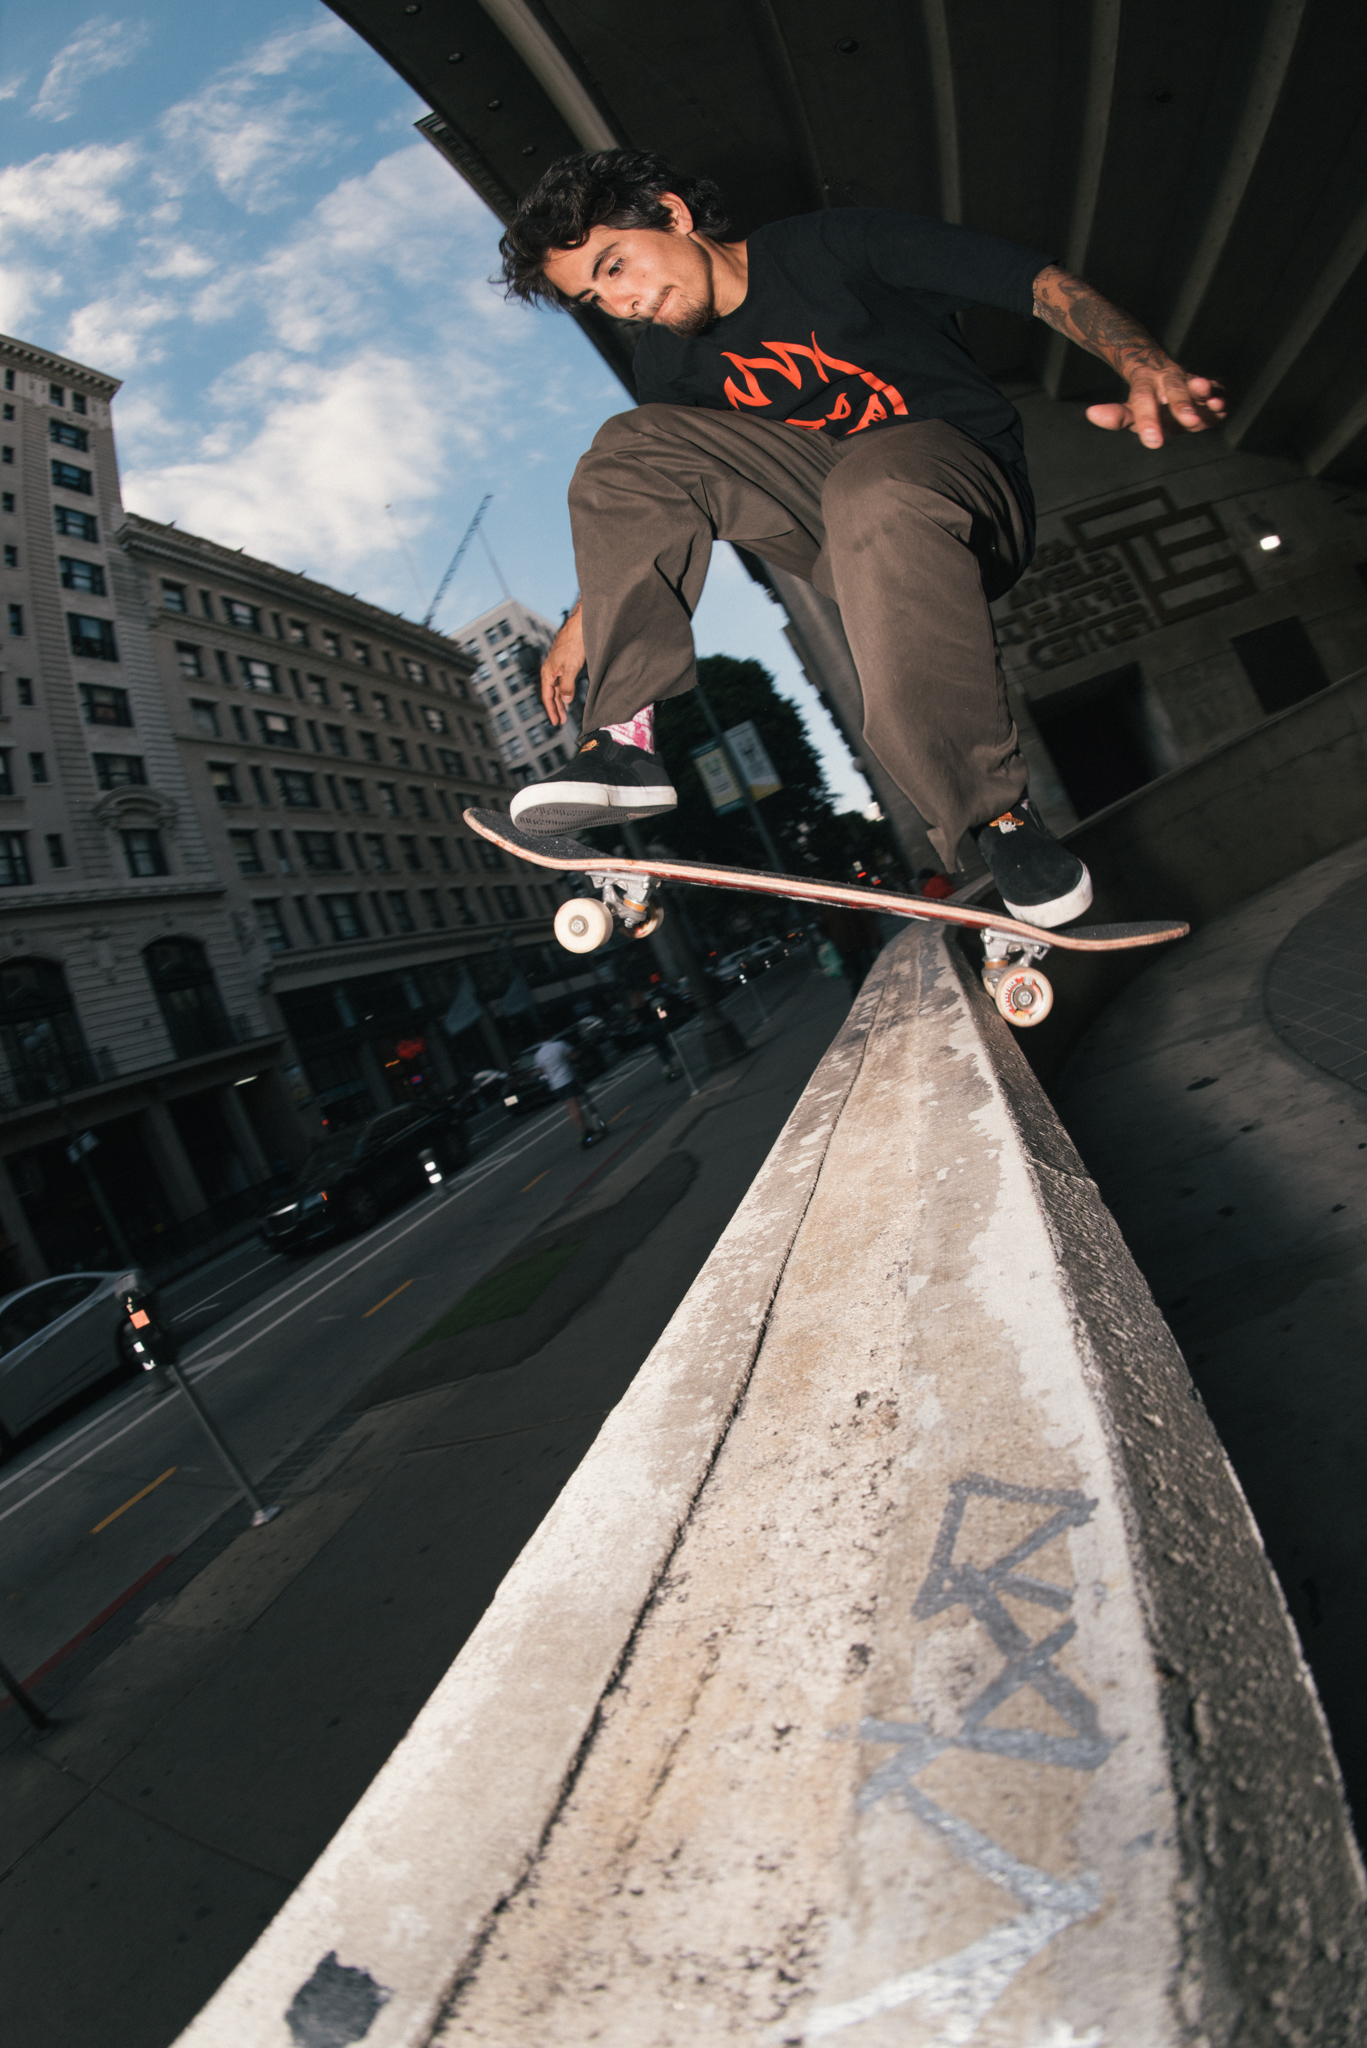 Chris Rivera, Wallie over to drop